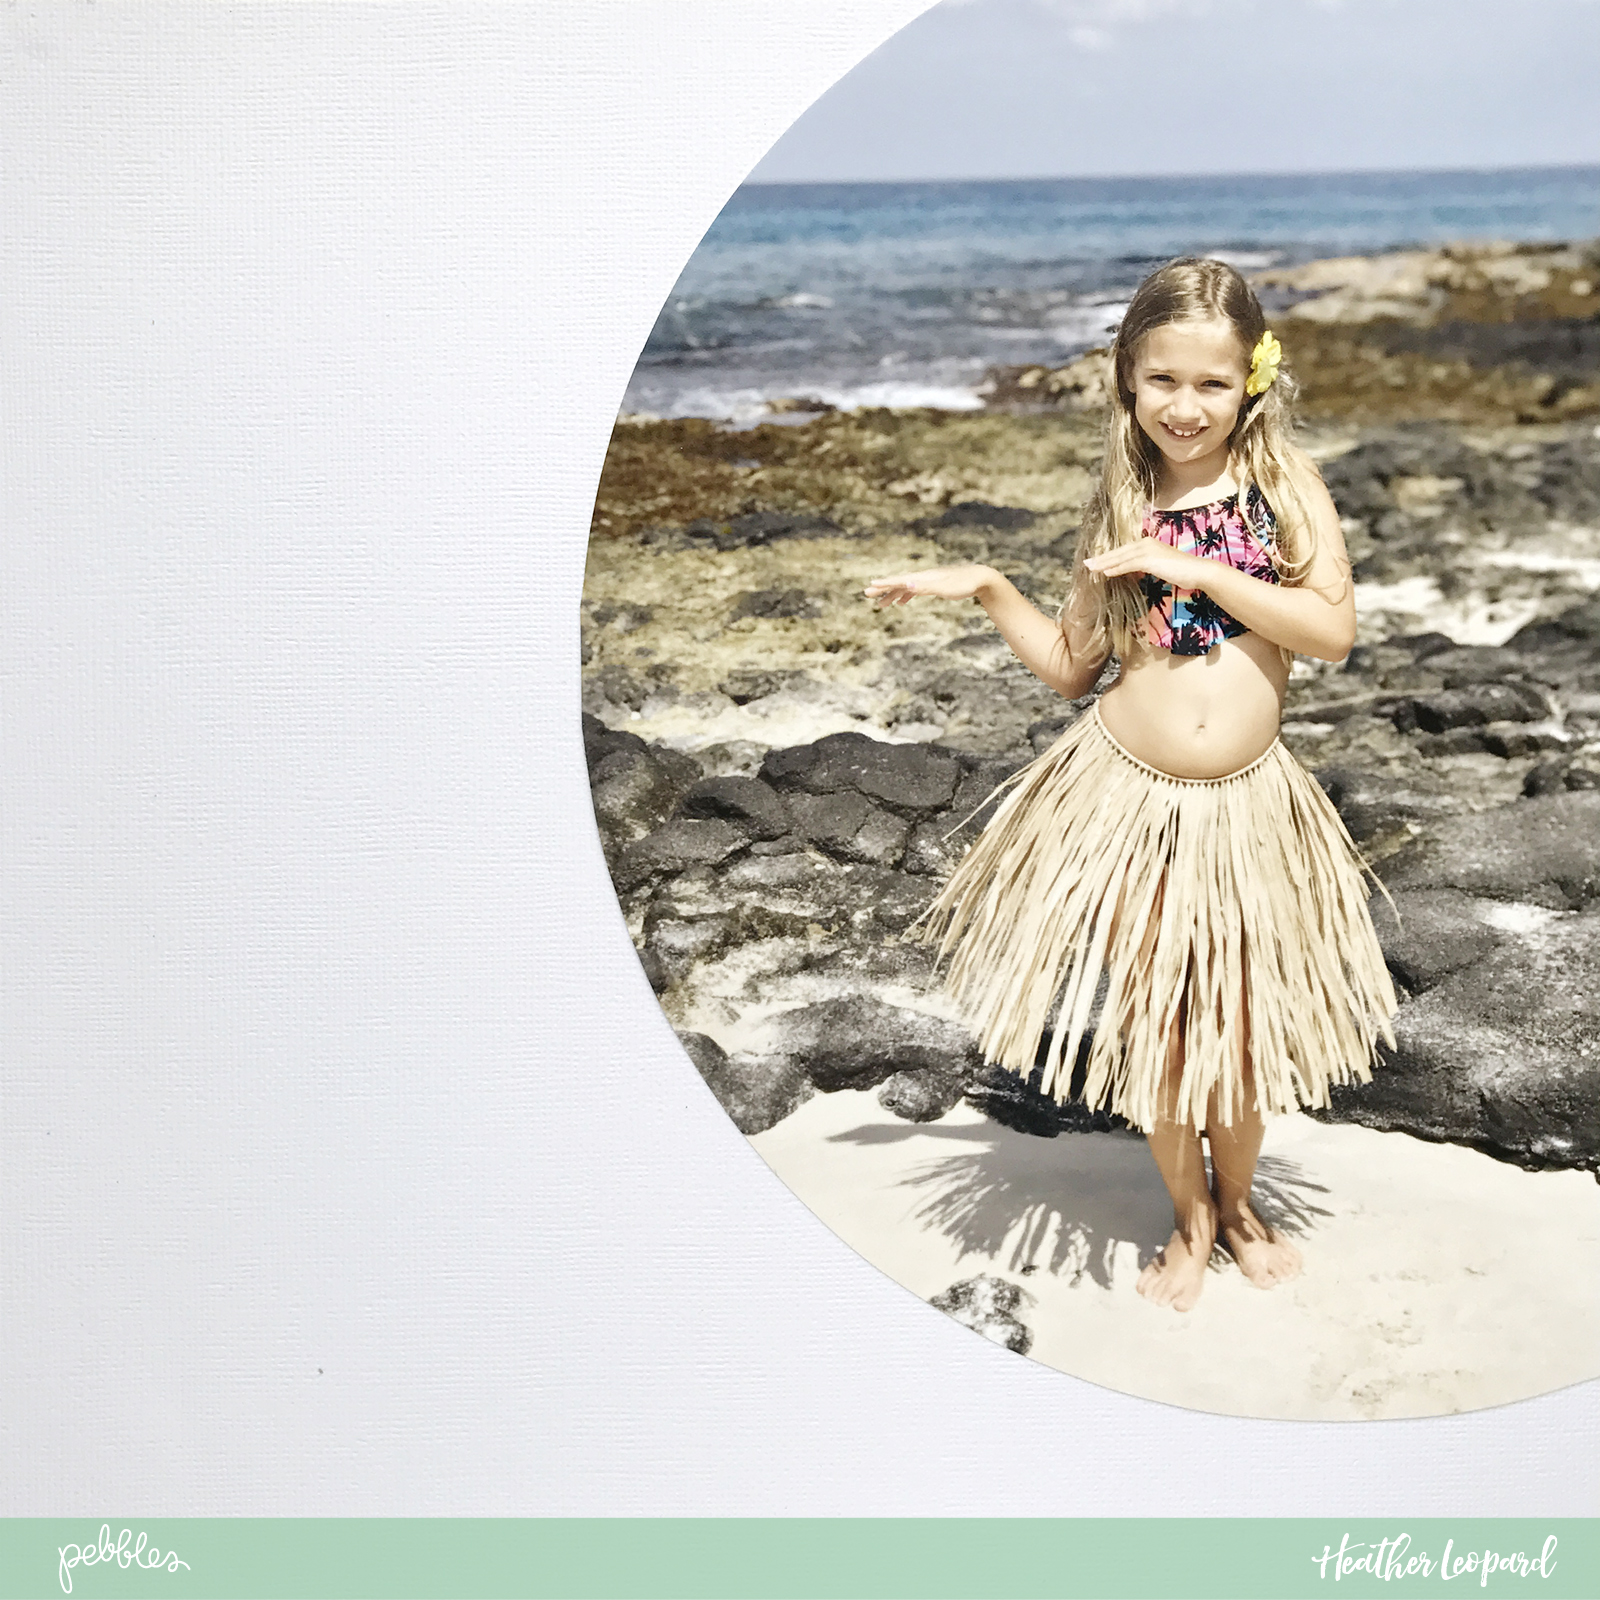 Aloha heart and free cut file by Heather Leopard using @PebblesInc #SunshinyDays collection #scrapbook #summer #scrapbooking #hula #madewithpebbles #aloha #hawaii